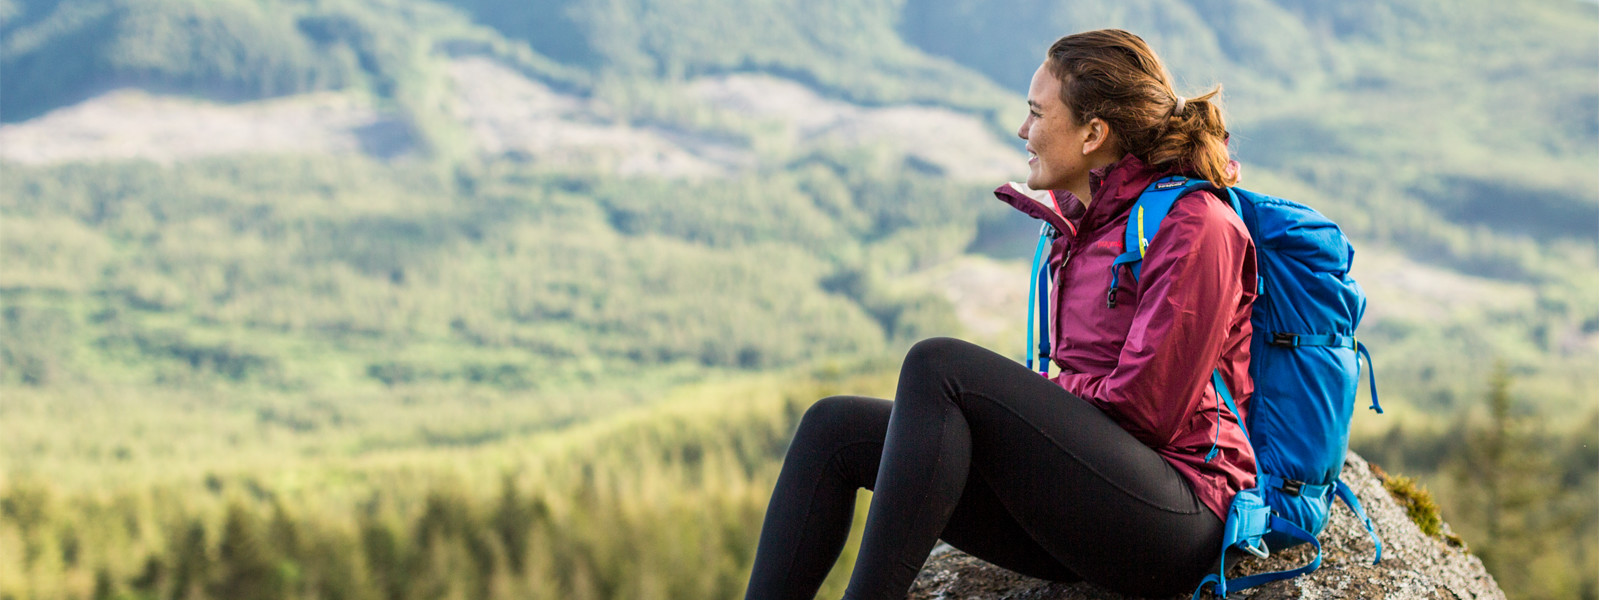 SPM student pauses on a hike to sit on a rock and take in the beautiful scenery of Oregon